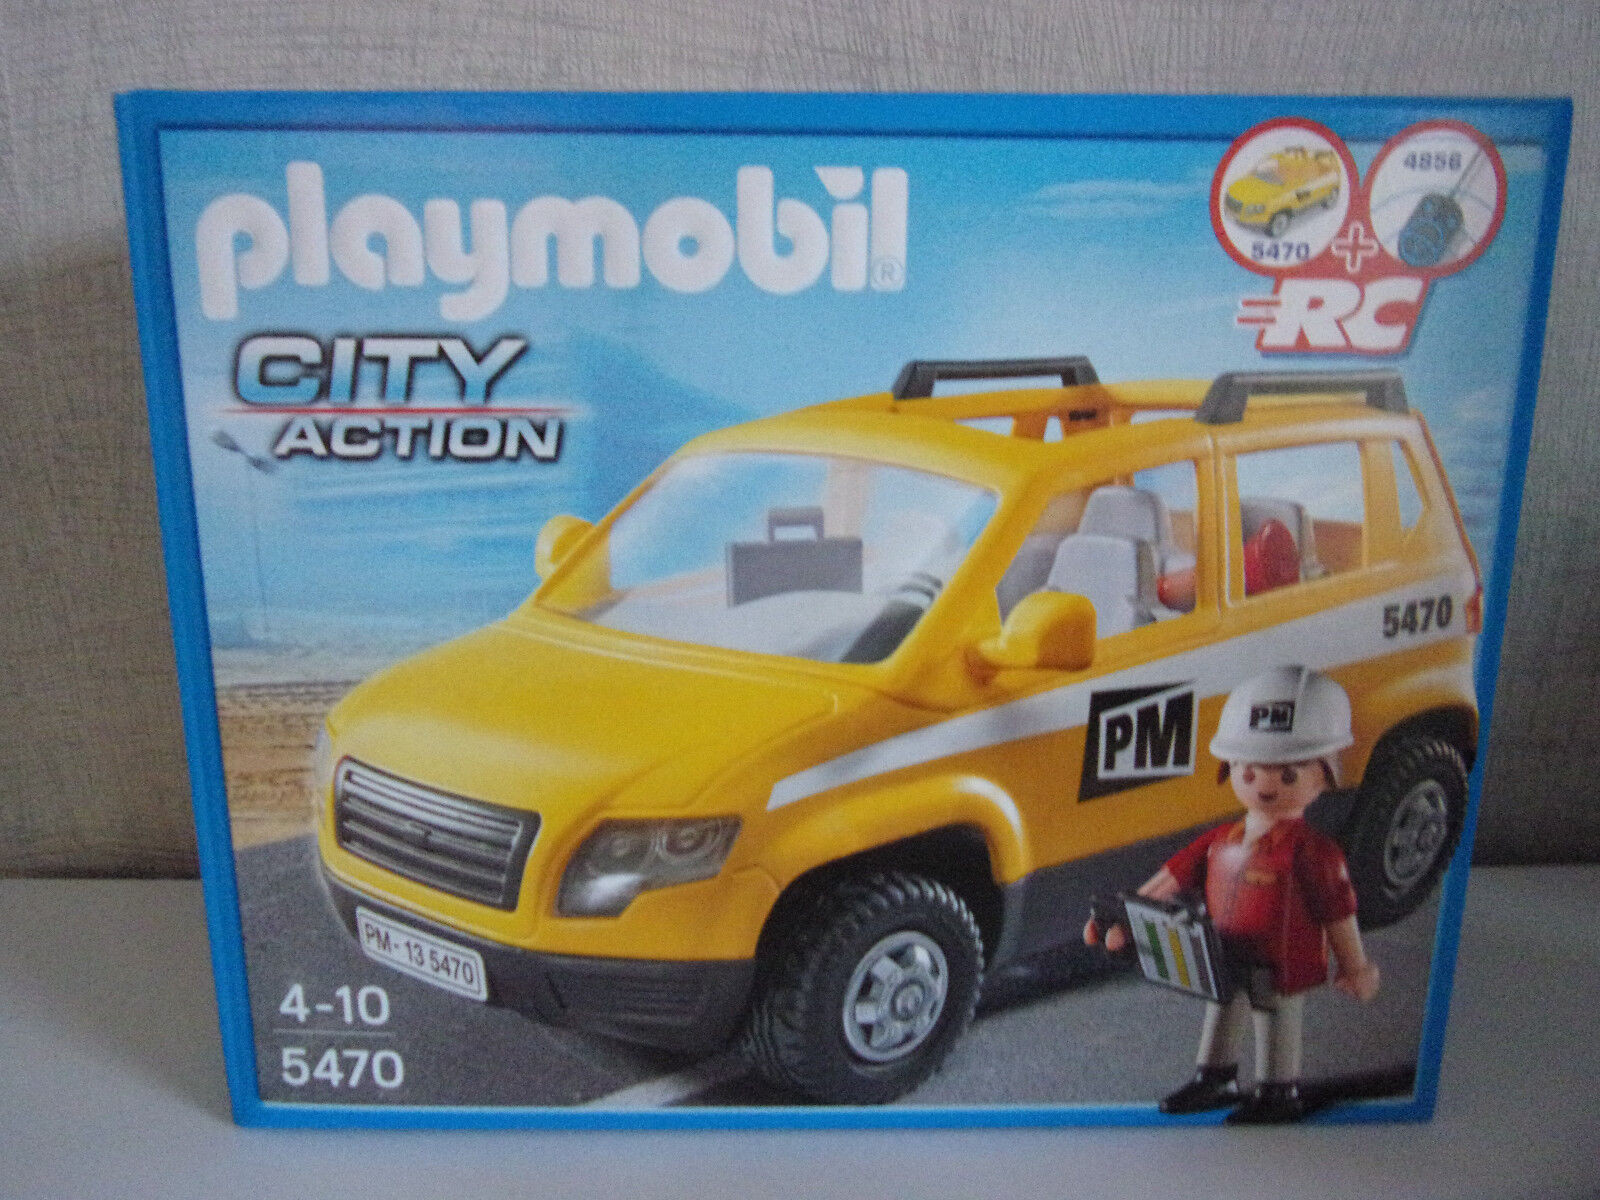 Playmobil City Action 5470 Construction Supervisor Vehicle - - - Nip 23791c